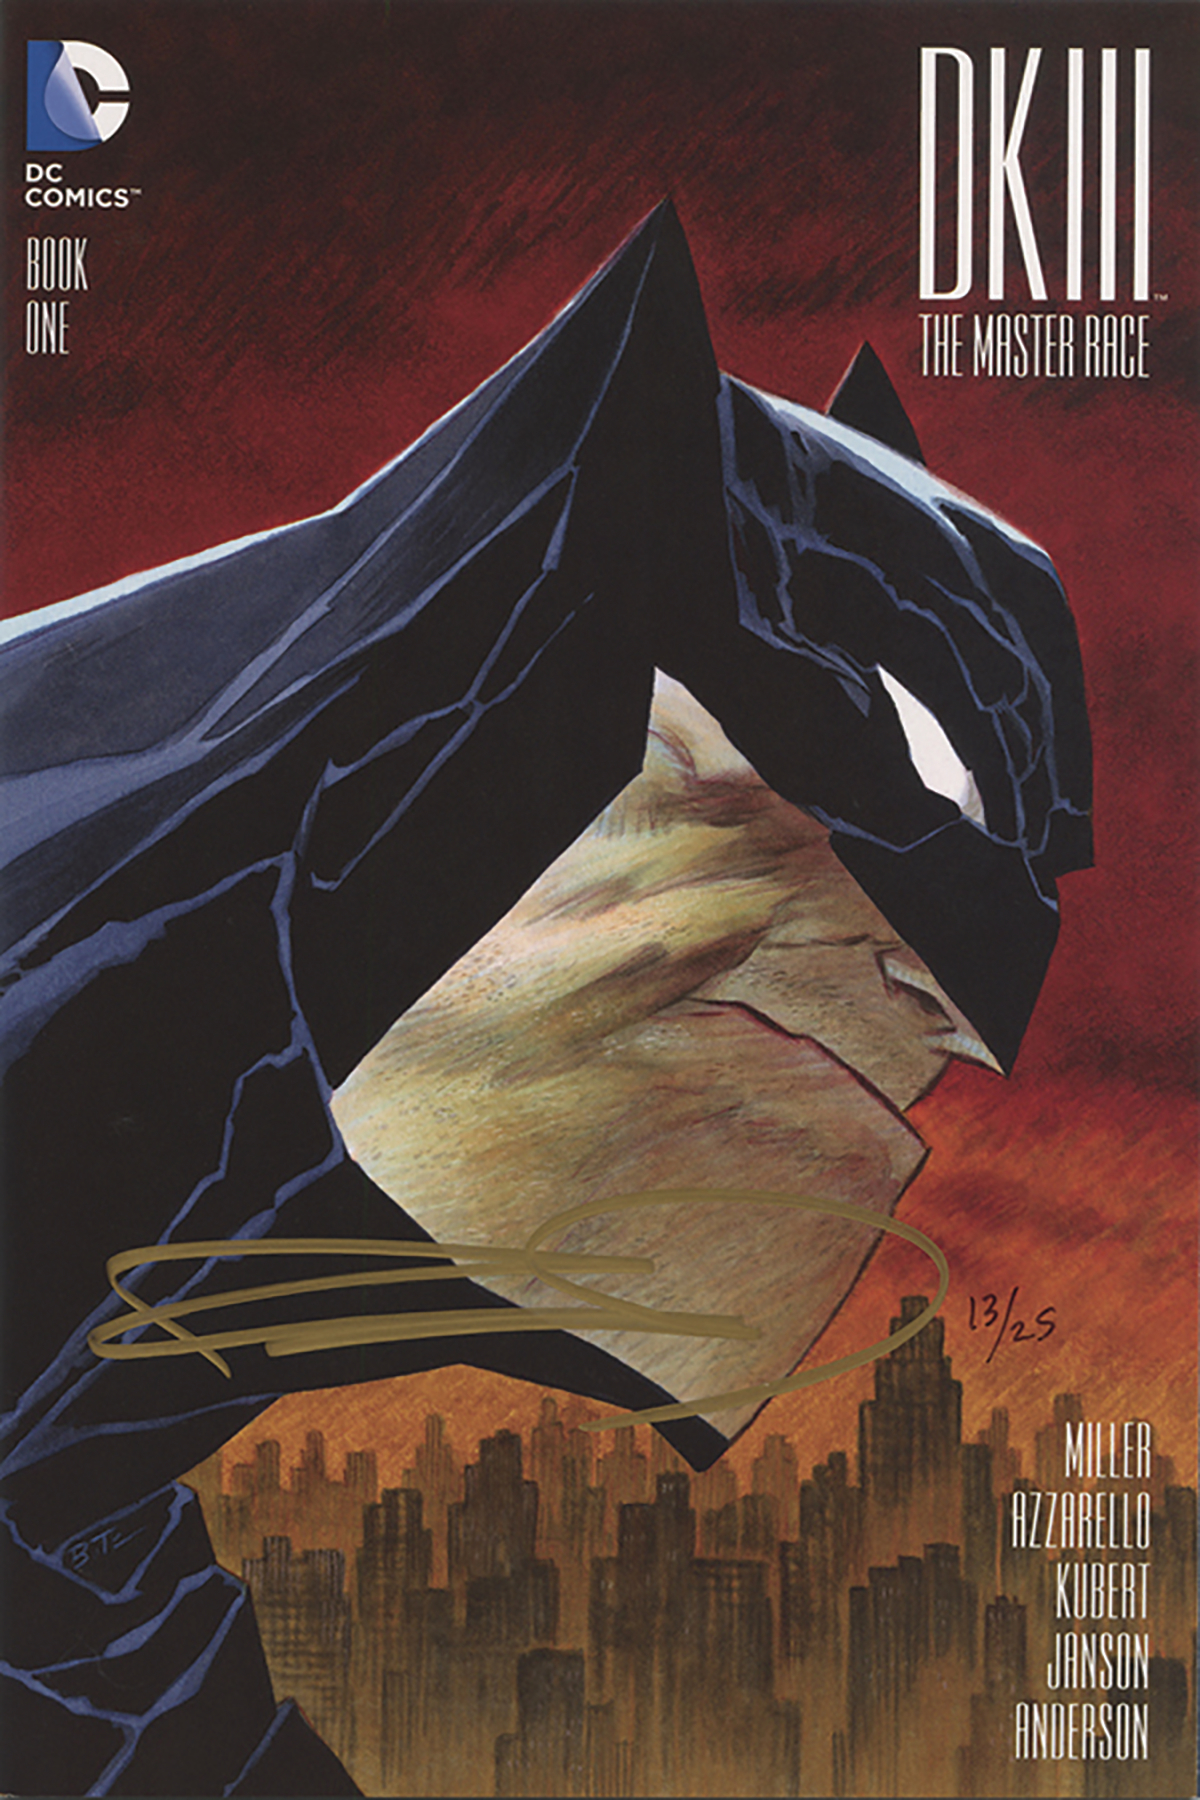 DF DARK KNIGHT III MASTER RACE #1 SGN MILLER